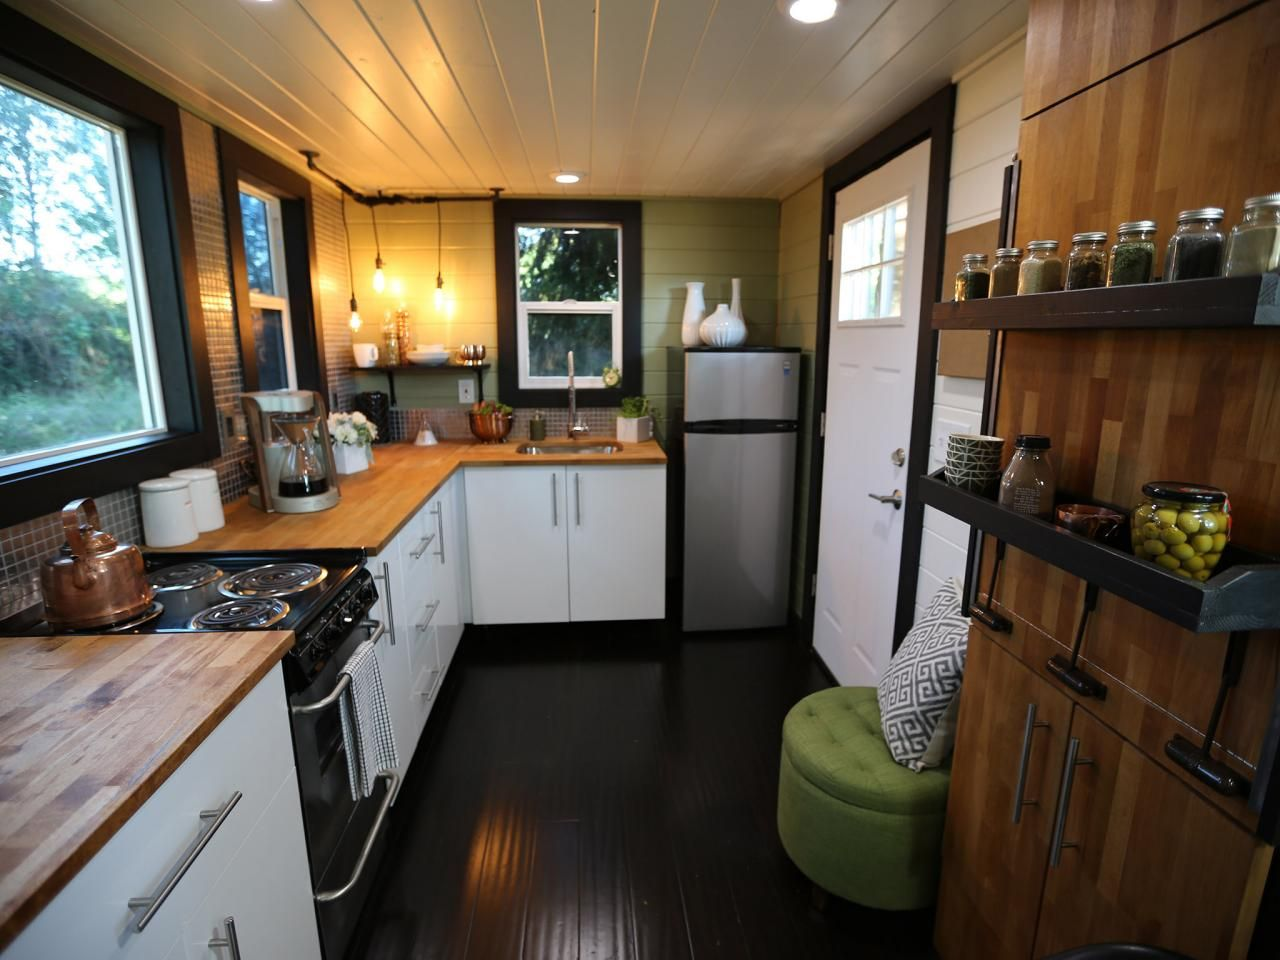 luxurious and splendid tiny house rv. Living tiny doesn t mean you have to rough it  See how home designers Tyson and Michelle Speiss pack luxurious amenities into houses measuring 330 Tiny Luxury 9 Things You Gain When Go